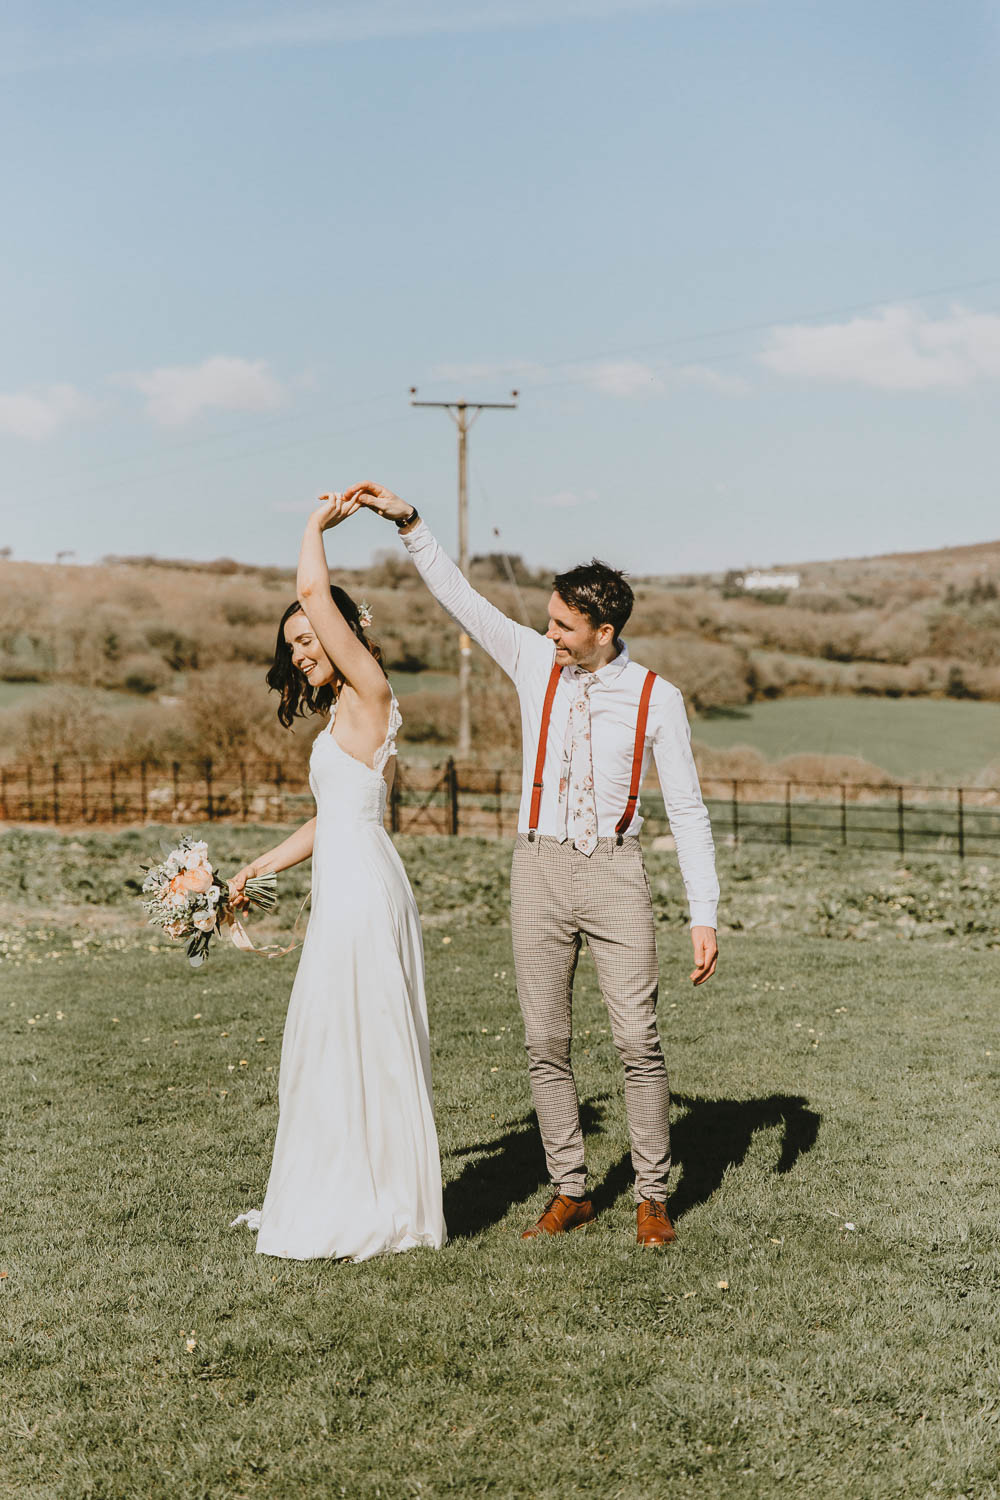 Groom Suit Style Look Chinos Floral Tie Braces Trevenna Barns Wedding Wild Tide Creative